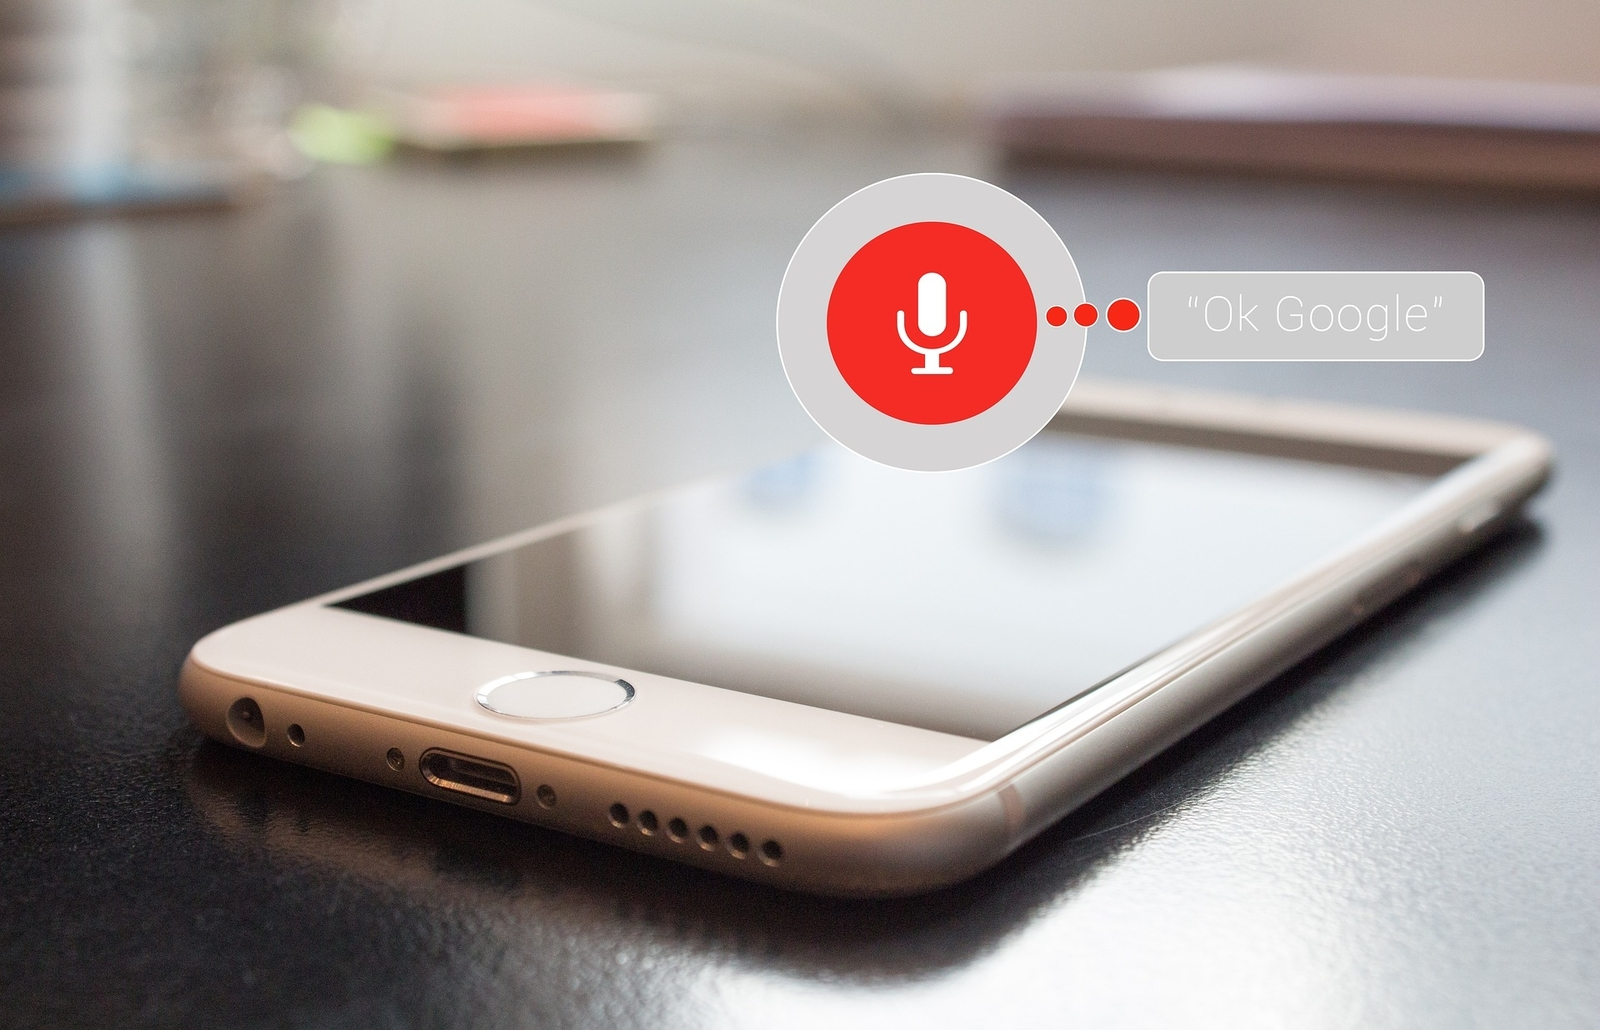 Voice control for voice-activated searches